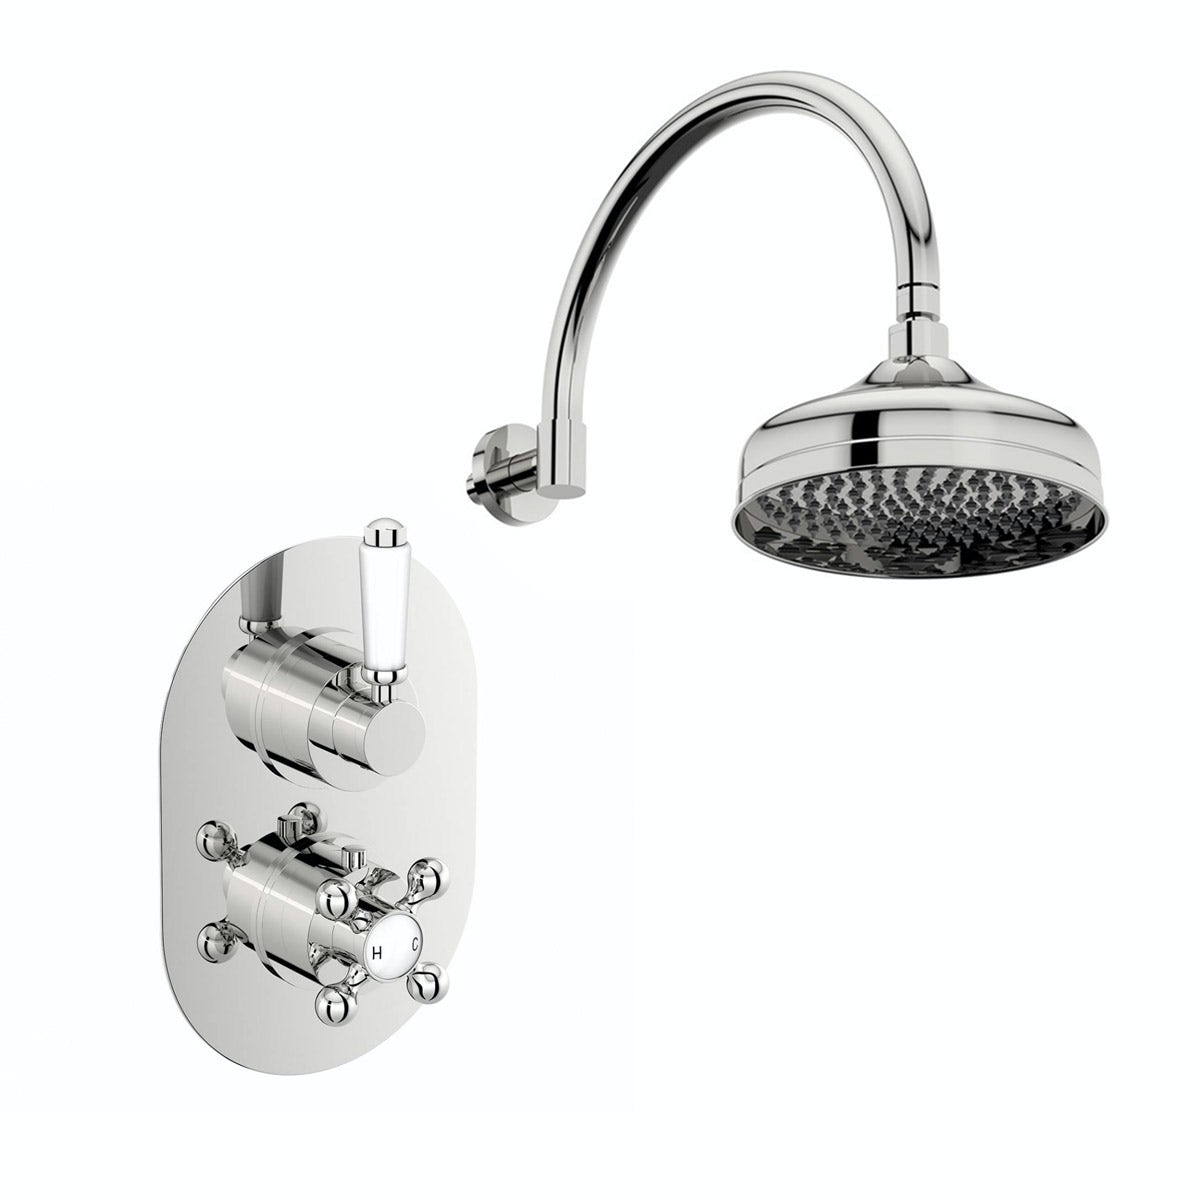 The Bath Co. Camberley thermostatic shower valve with wall shower set